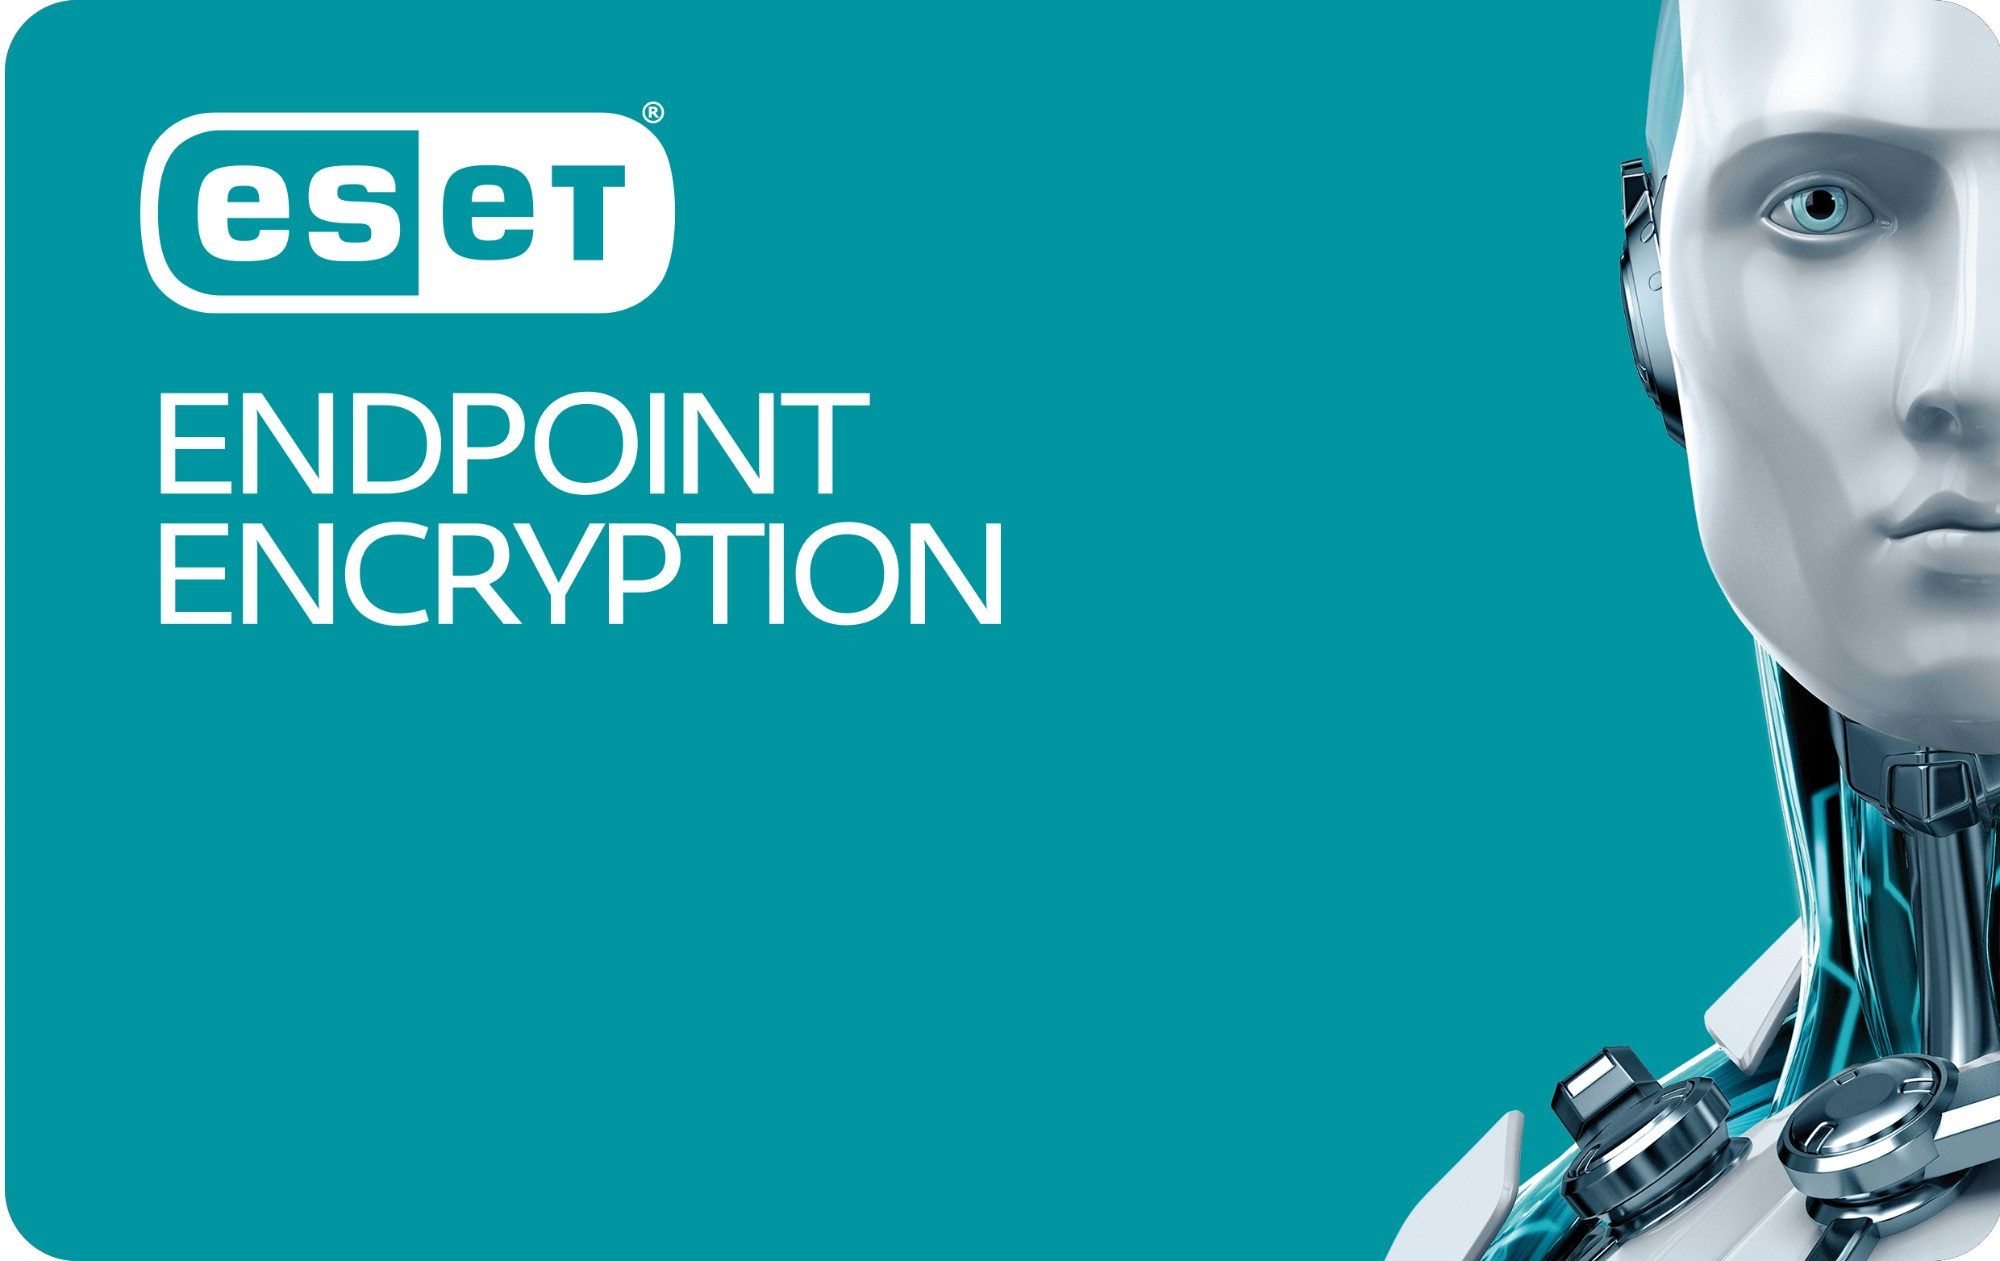 ESET Endpoint Encryption Pro 50 - 99 User Government (GOV) license 50 - 99 license(s) 1 year(s)